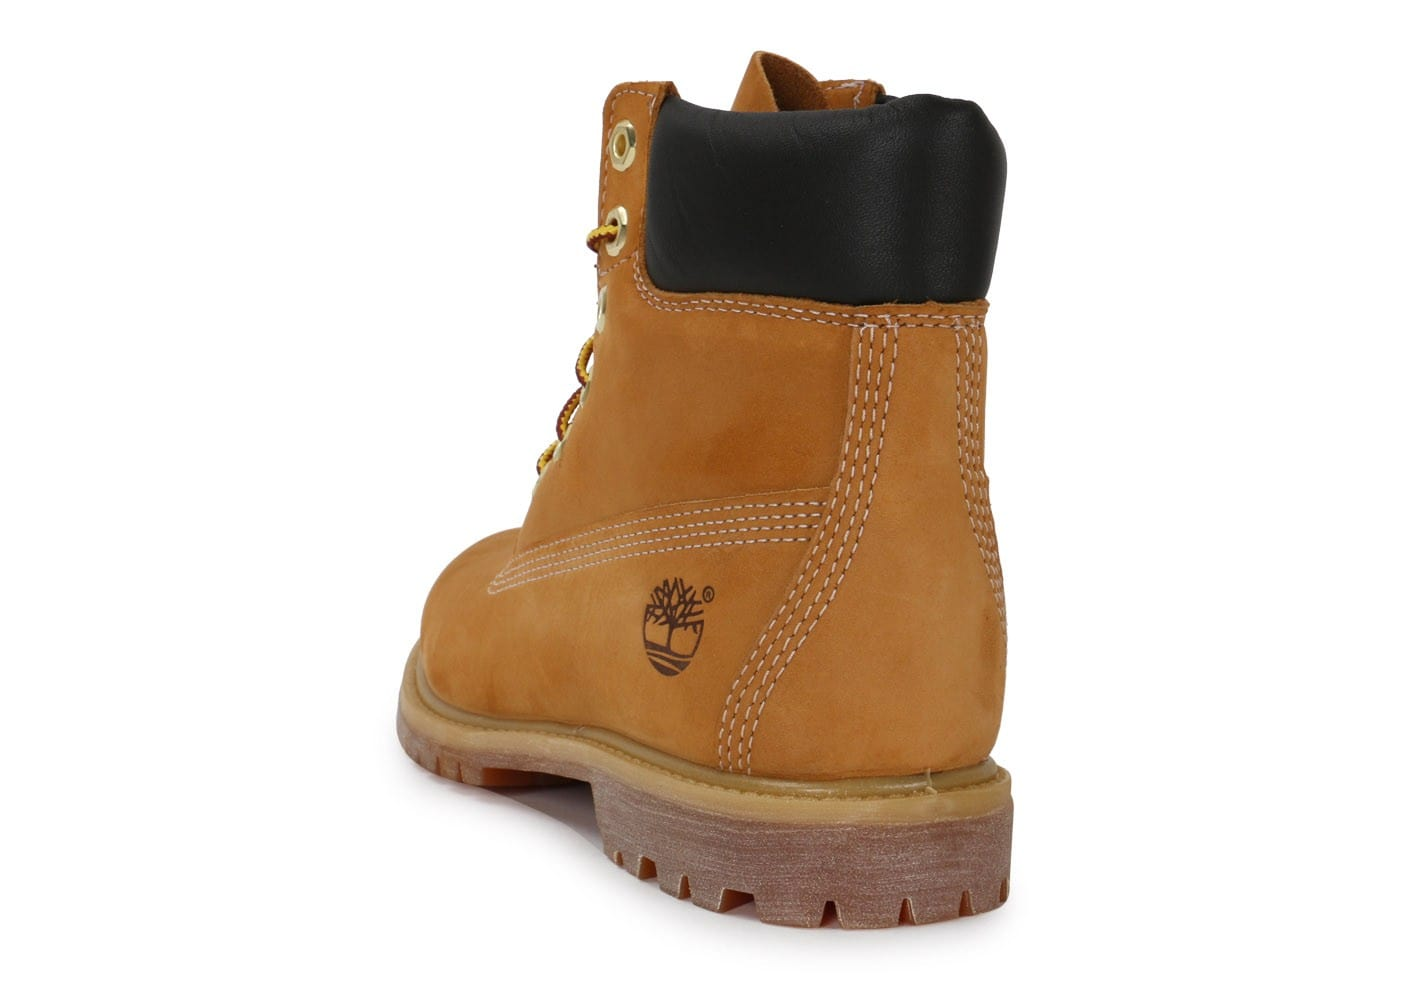 Chaussures Timberland Premium 35 beiges 8ZnwR - whirlse.alliance ... 7fa7f9b21946